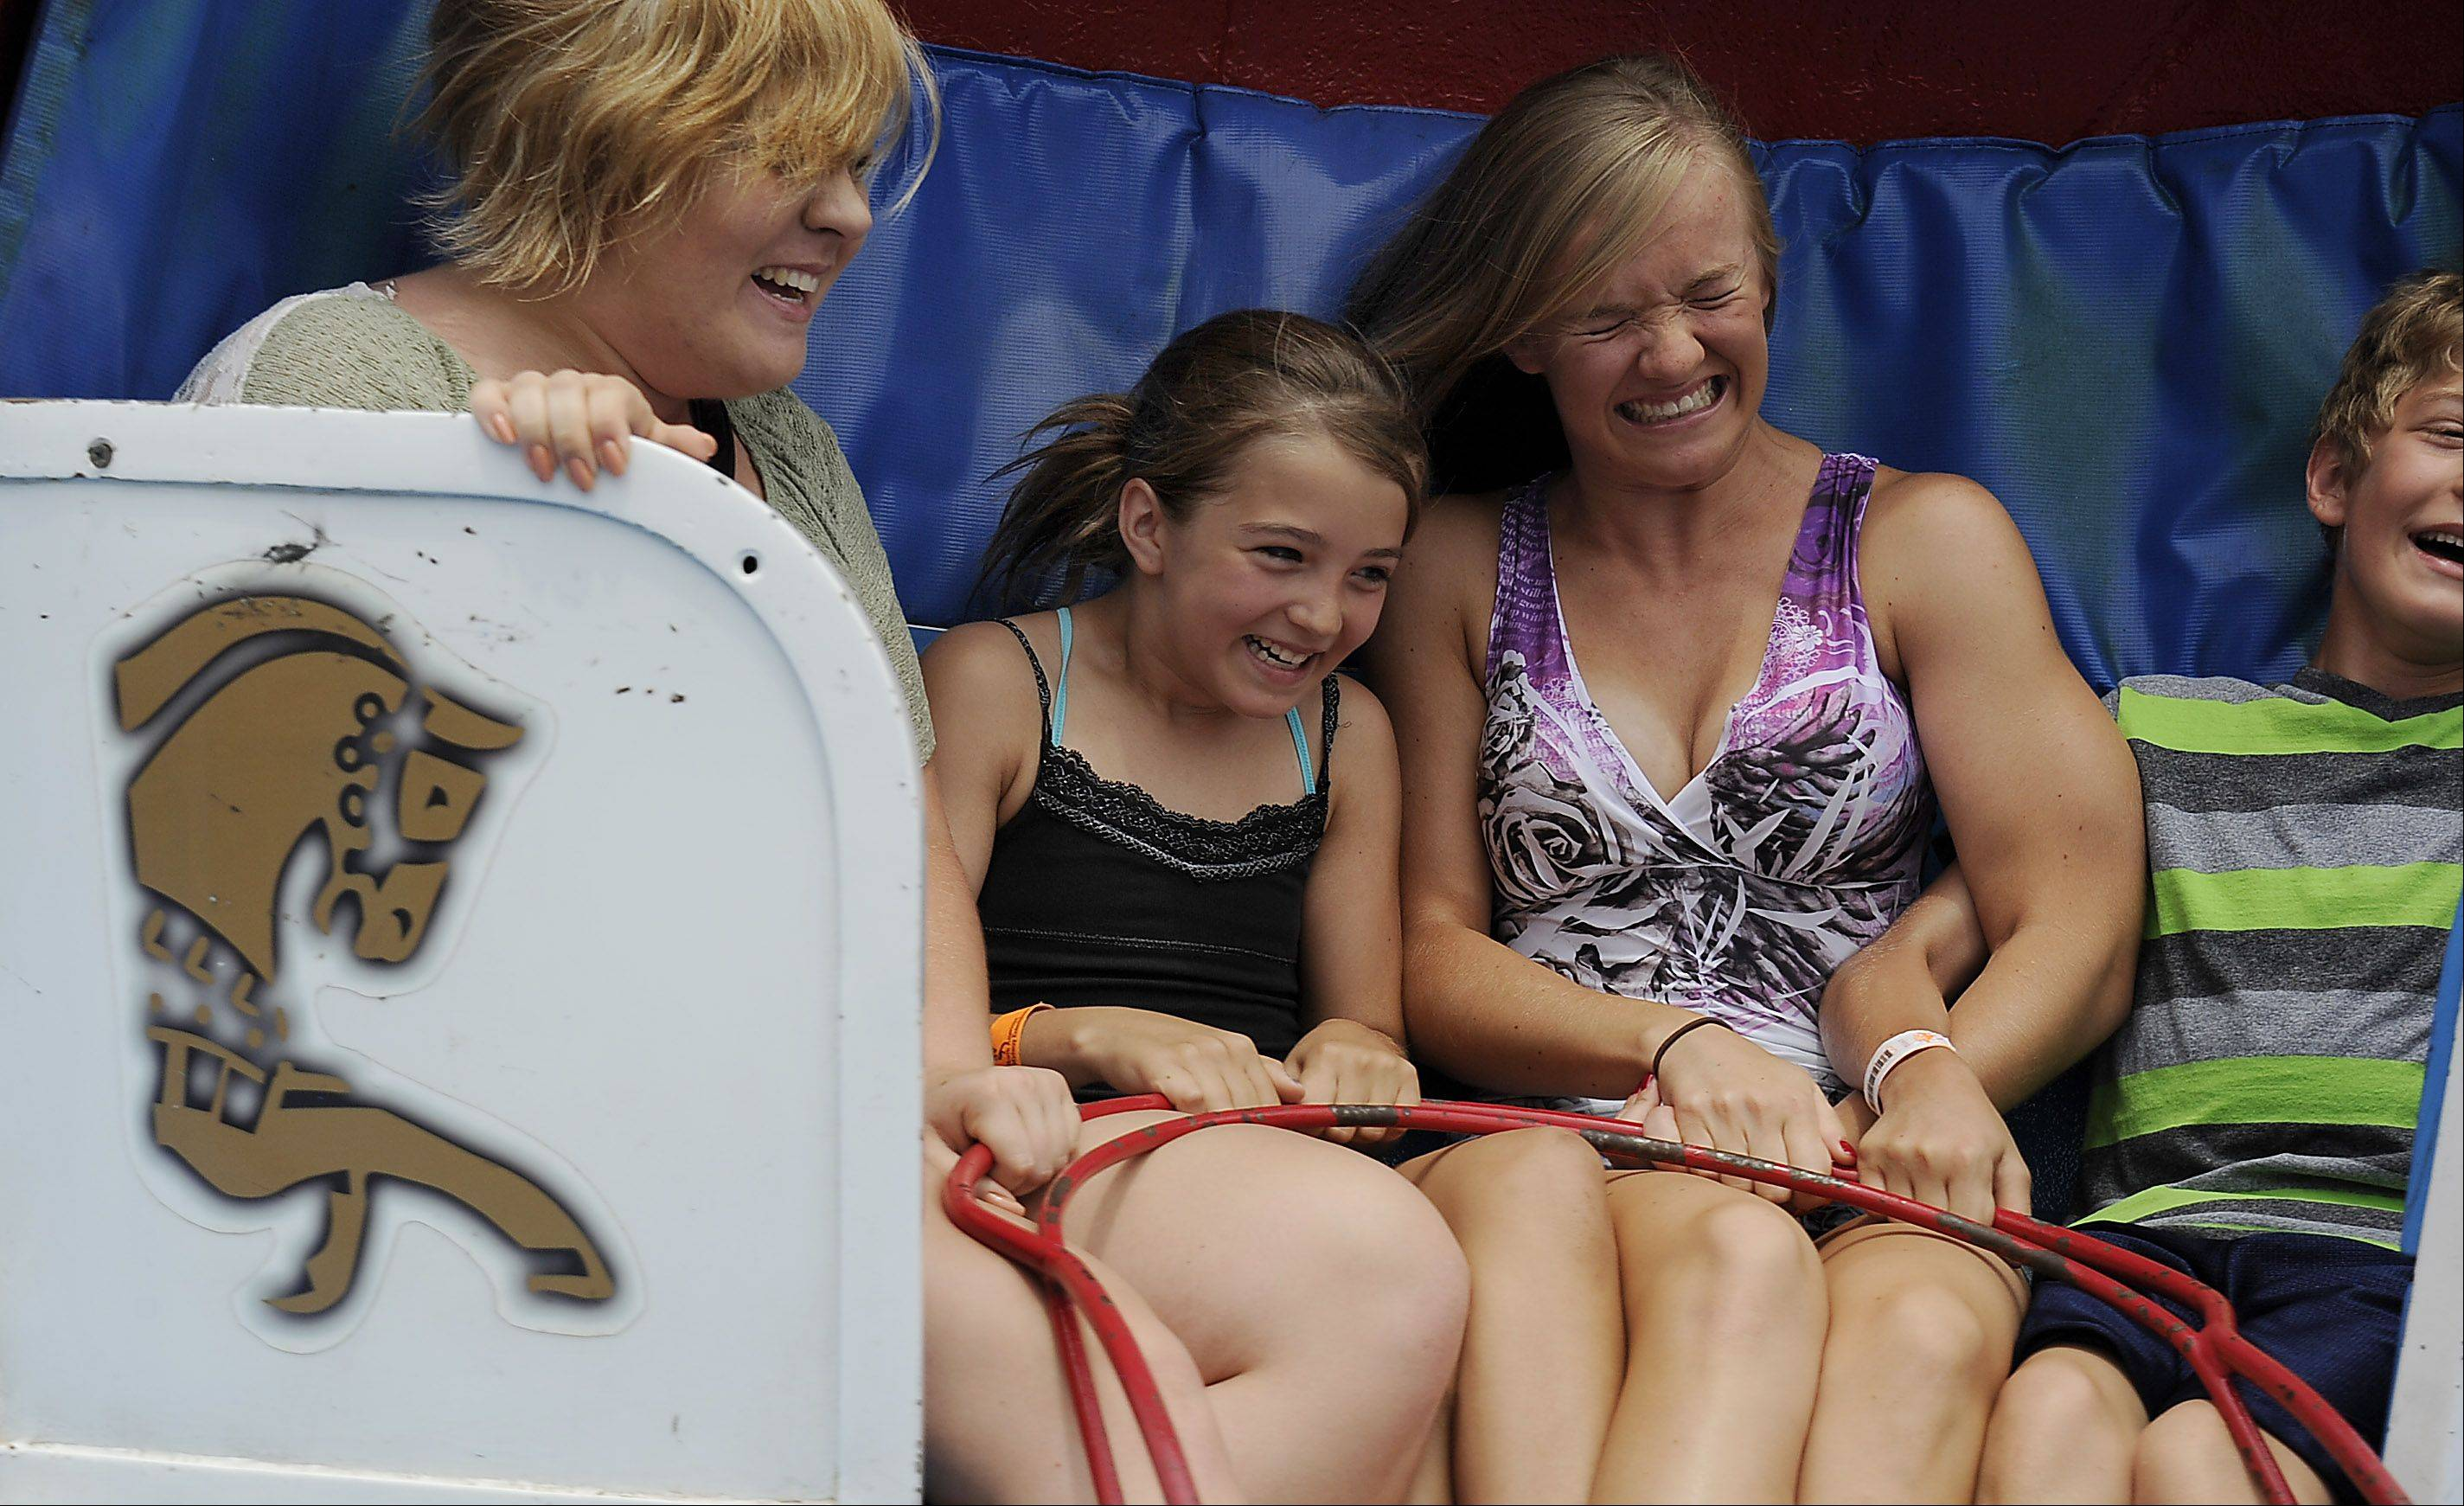 The Tilt A Whirl gives the Golaszewski kids, Elizabeth, 21, Olivia, 12, Jessica, 17, and Peter, 12, all of Bartlett, a fun afternoon at the Bartlett fourth of July festival on Saturday.